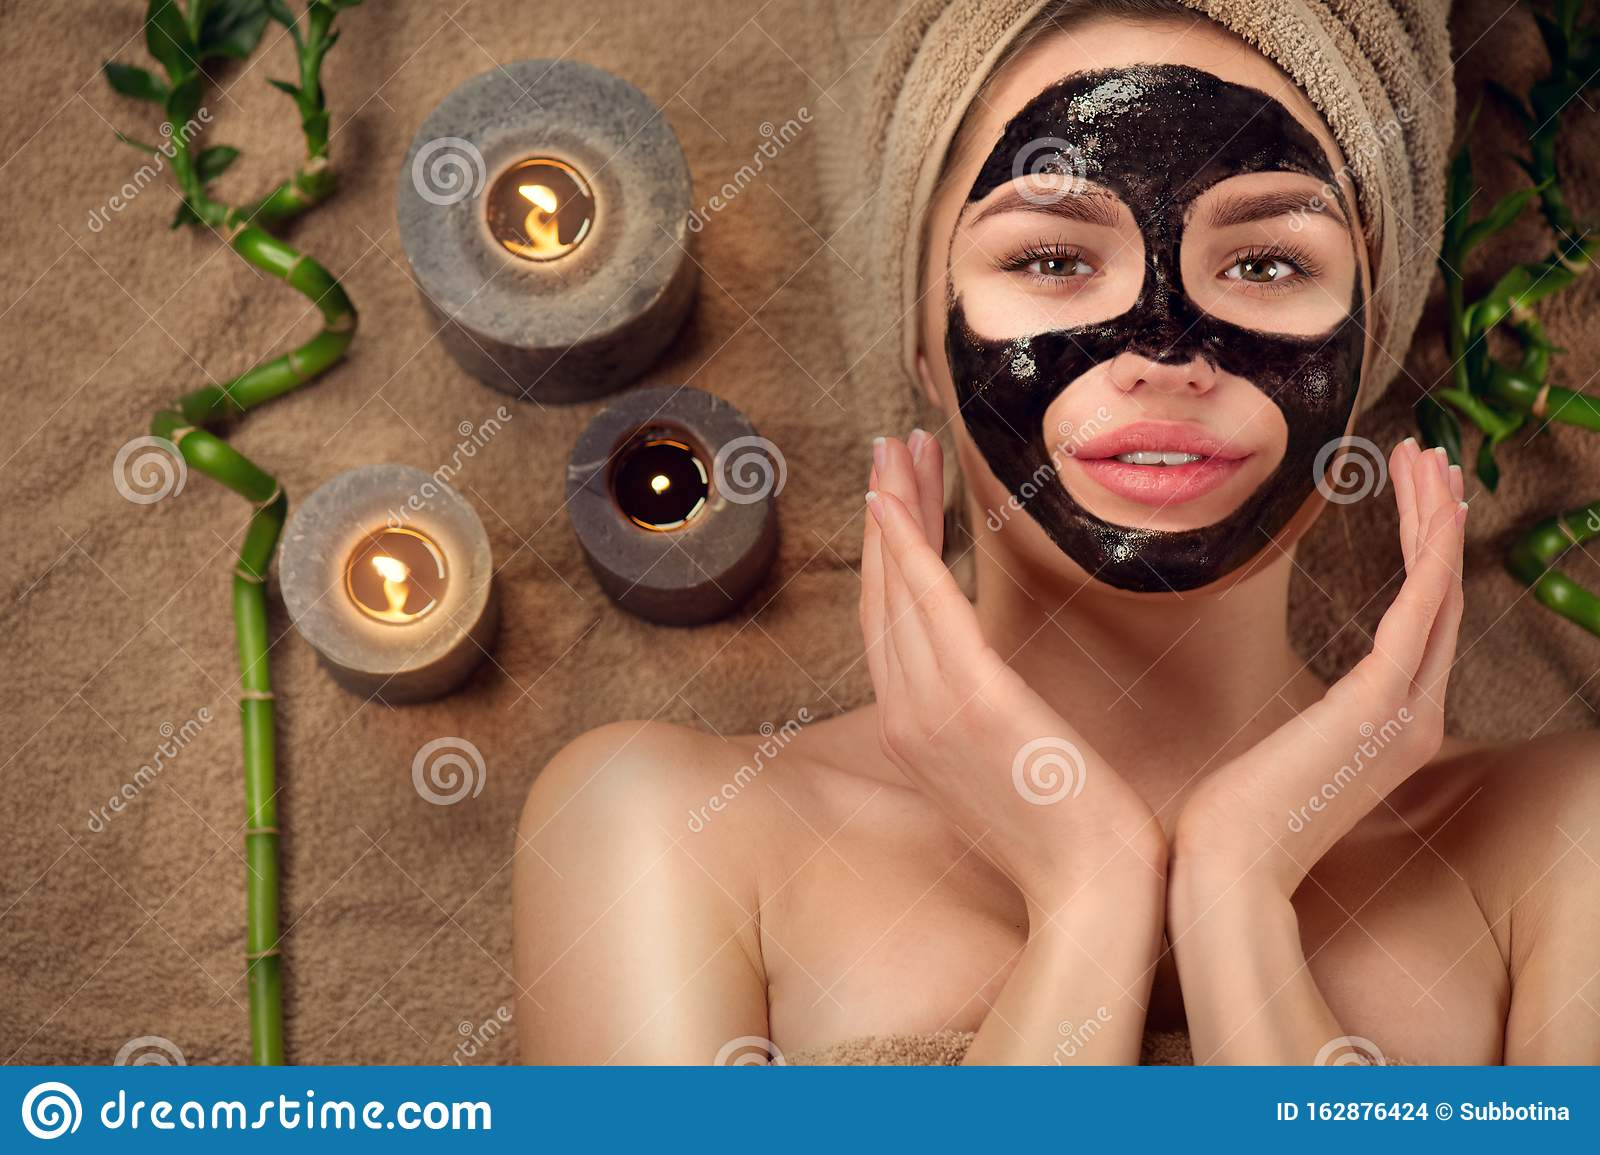 Beautiful woman with black purifying black charcoal mask on her face. Beauty model girl with black facial peel-off mask